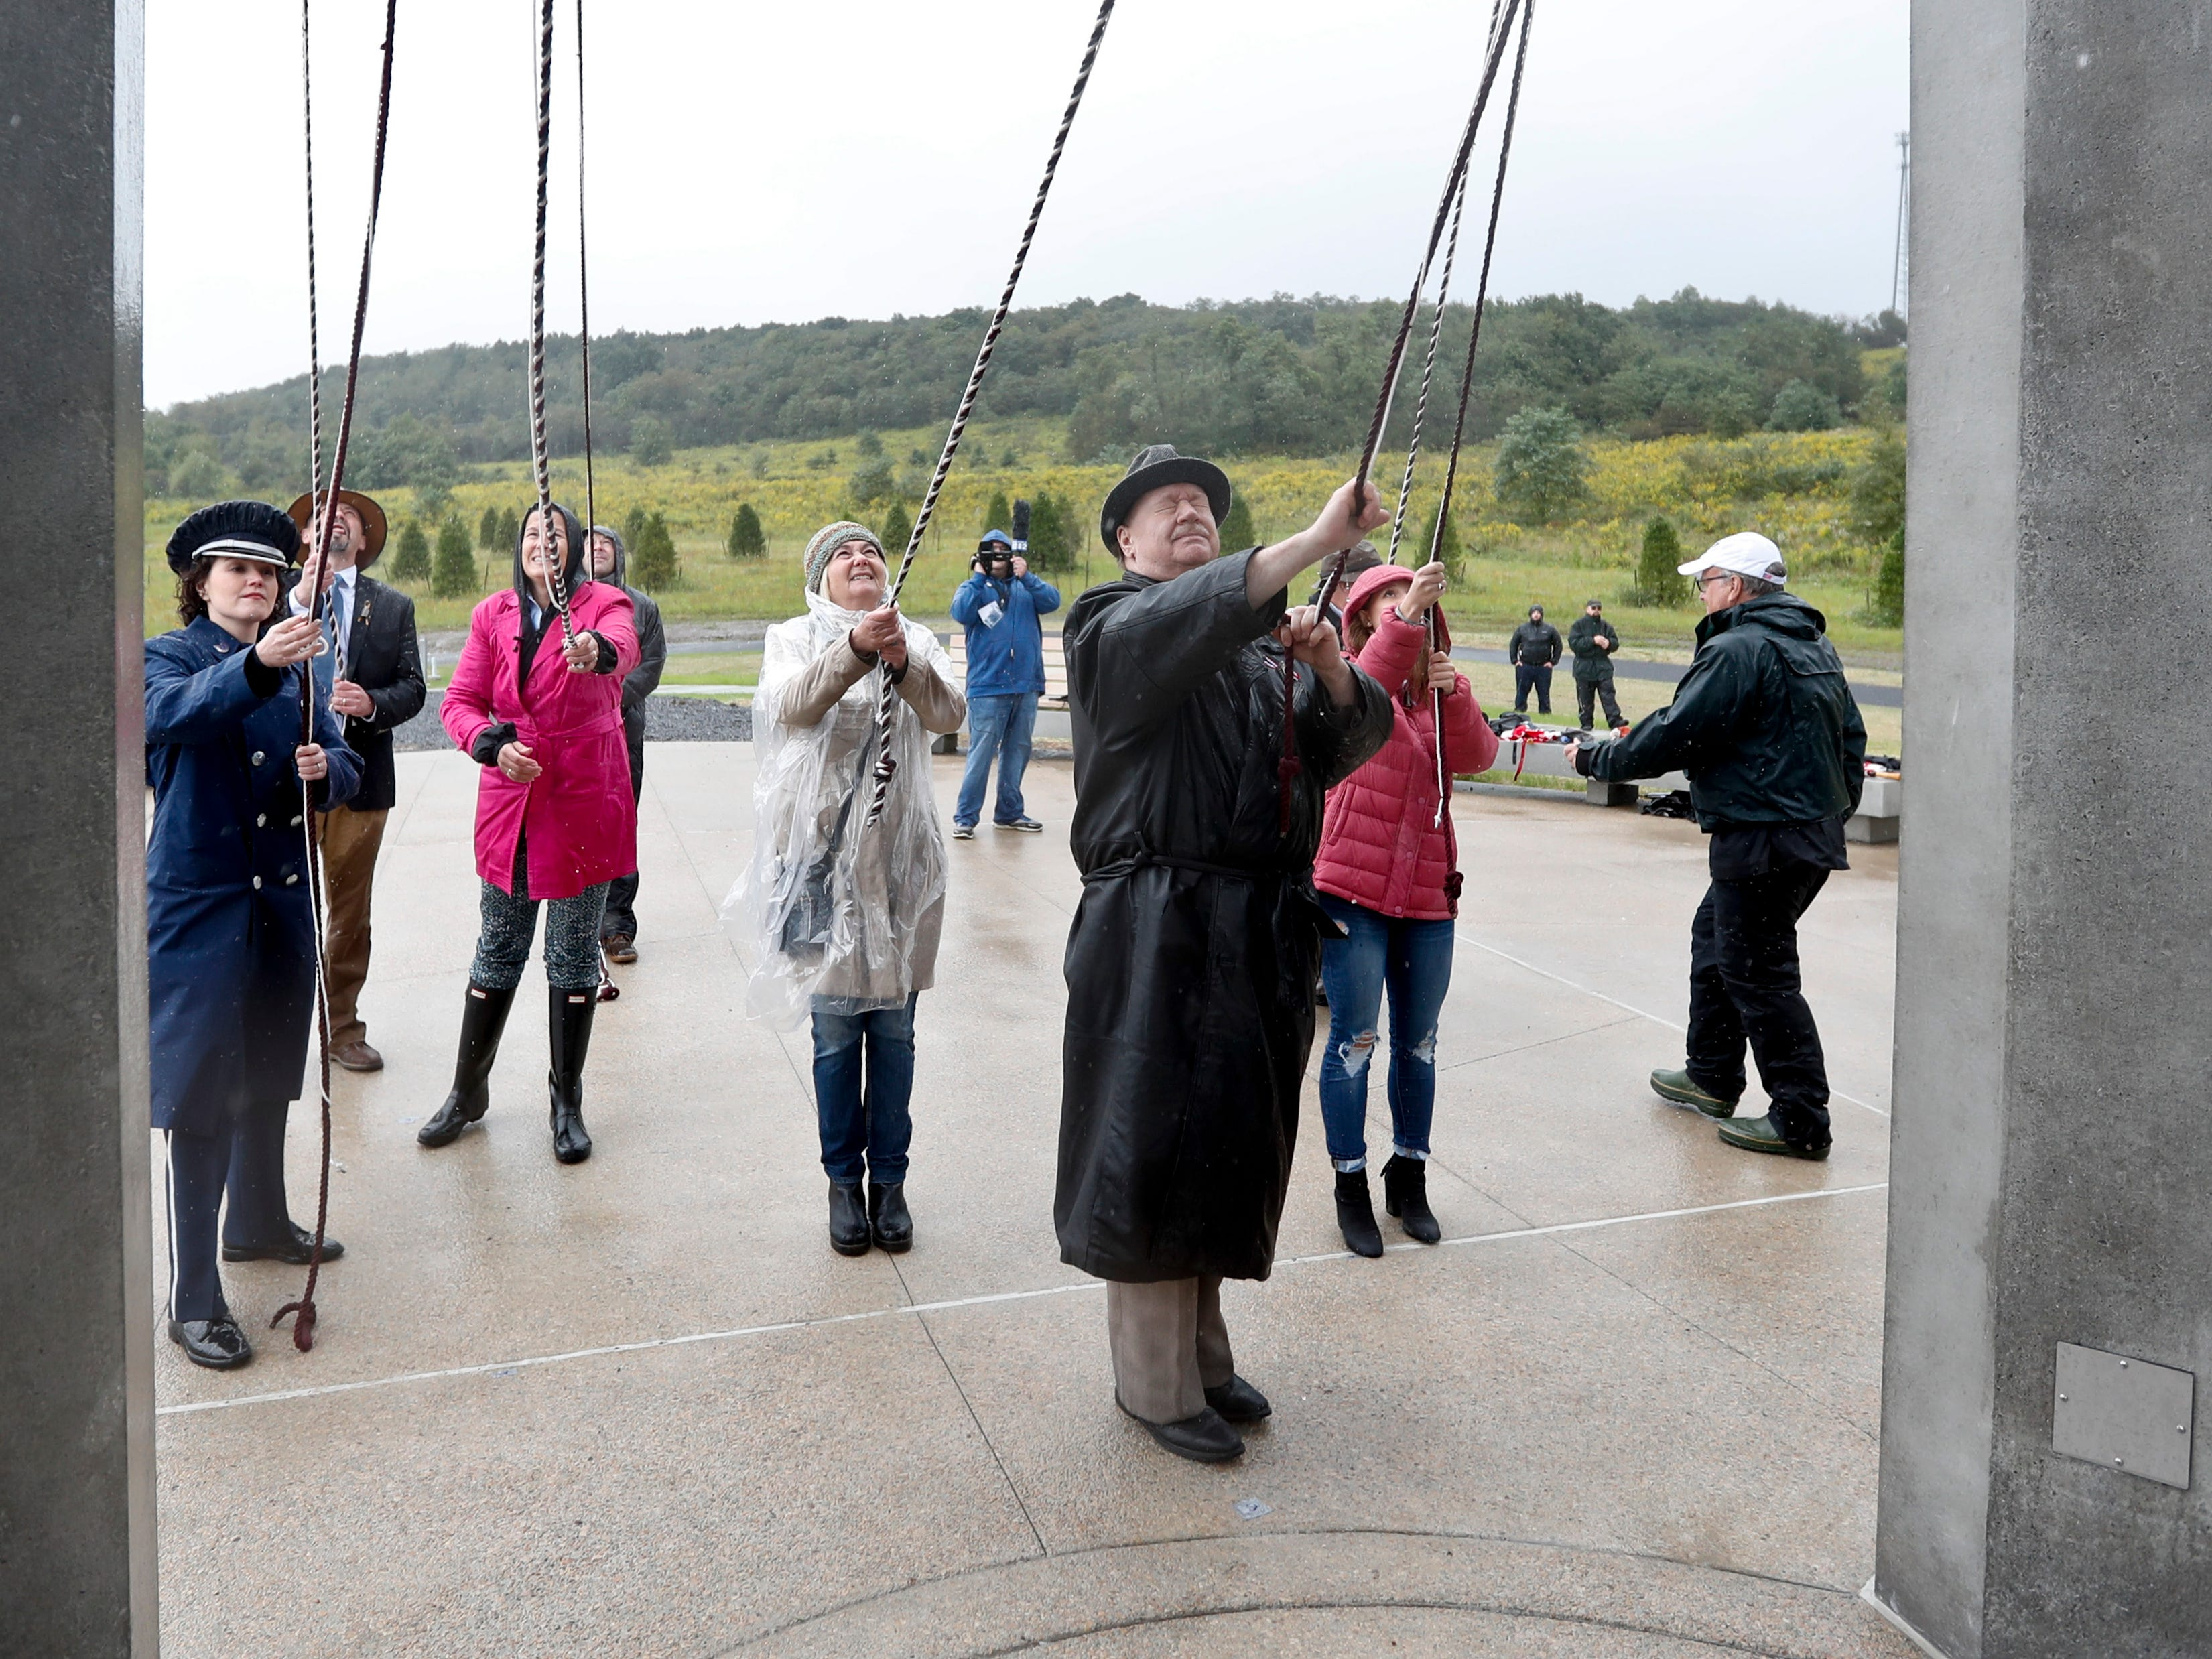 Members of passenger families, friends and volunteer representatives, pull the ropes to ring the chimes at the dedication of the 93-foot tall Tower of Voices on Sunday, Sept. 9, 2018 at the Flight 93 National Memorial in Shanksville, Pa. The tower contains 40 wind chimes representing the 40 people that perished in the crash of Flight 93 in the terrorist attacks of Sept. 11, 2001.